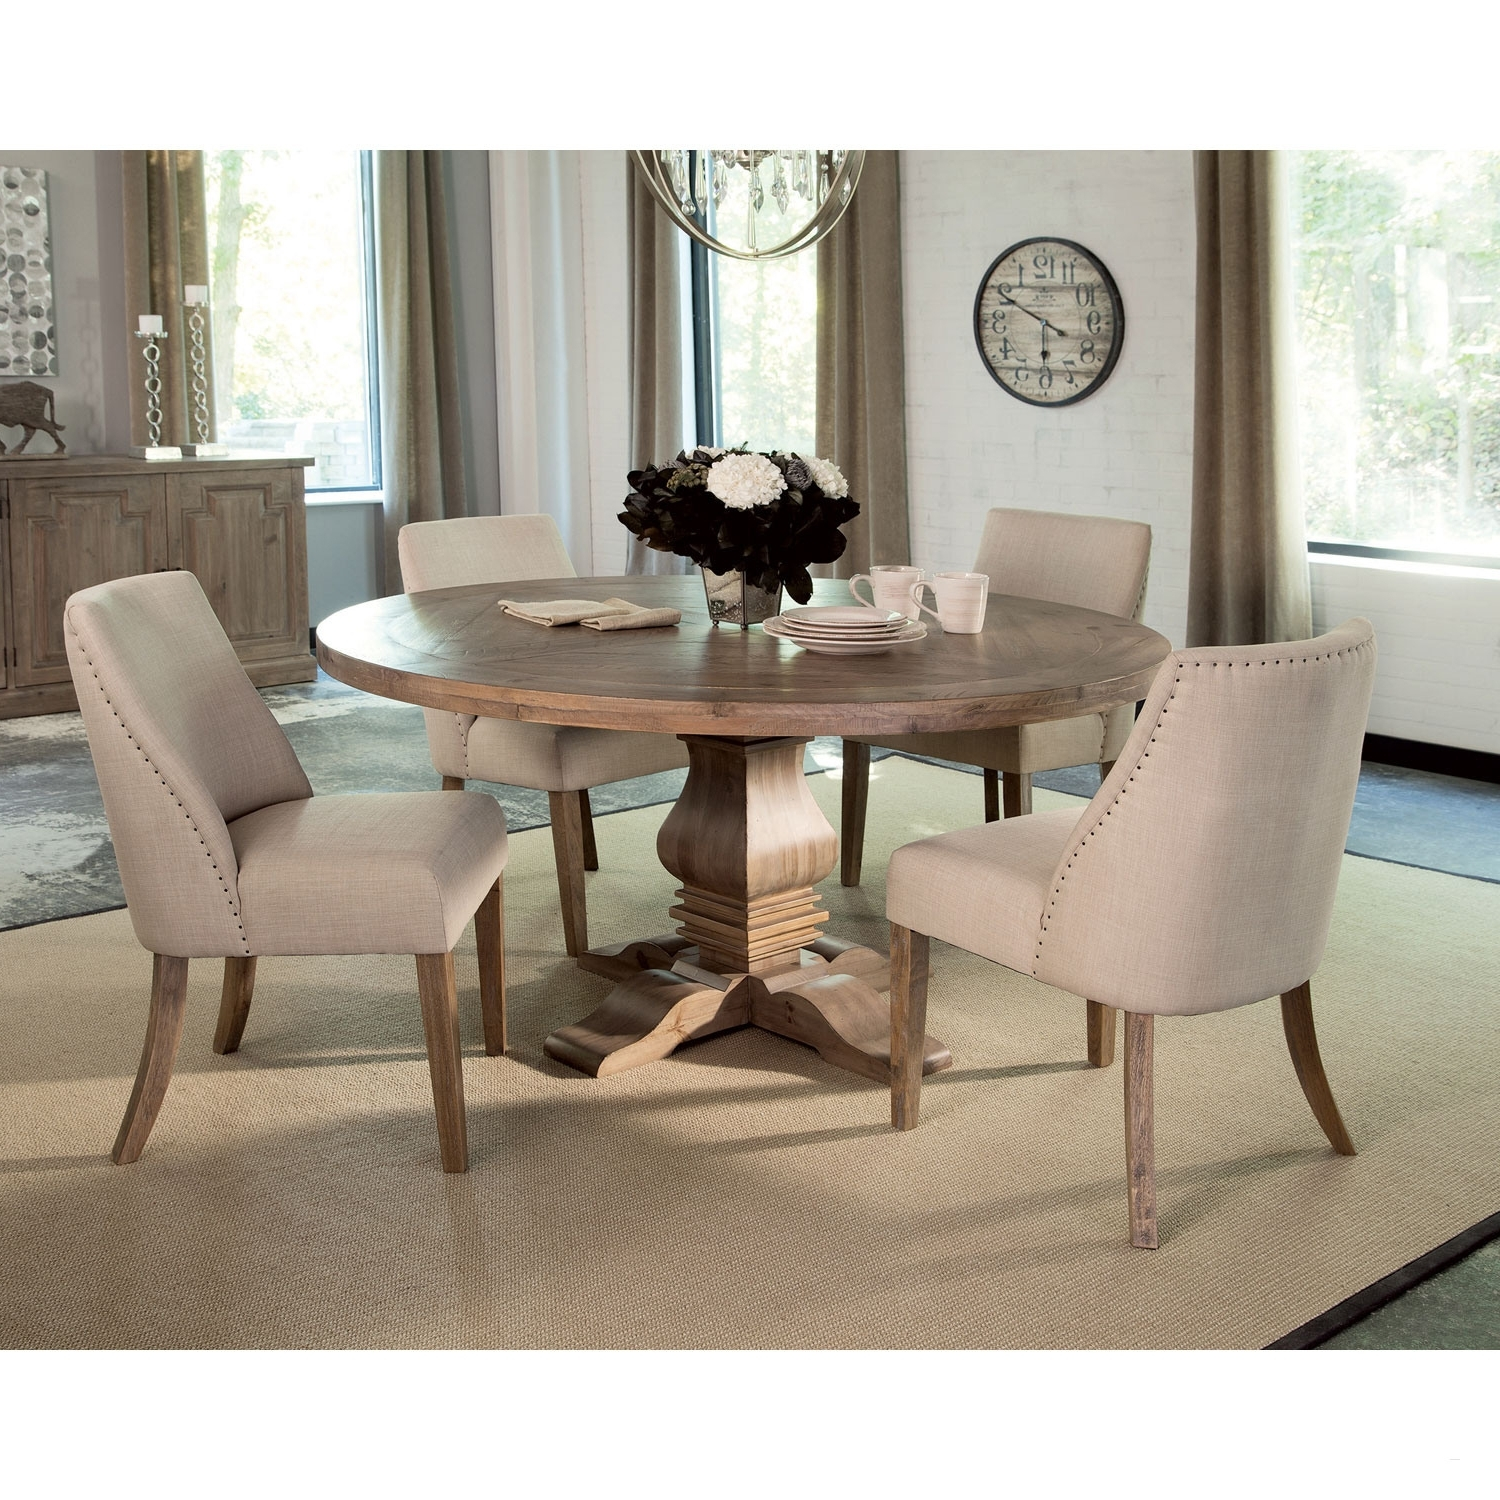 Fetching Circle Kitchen Table With Macie Round Dining Table Pertaining To Popular Macie Round Dining Tables (View 21 of 25)